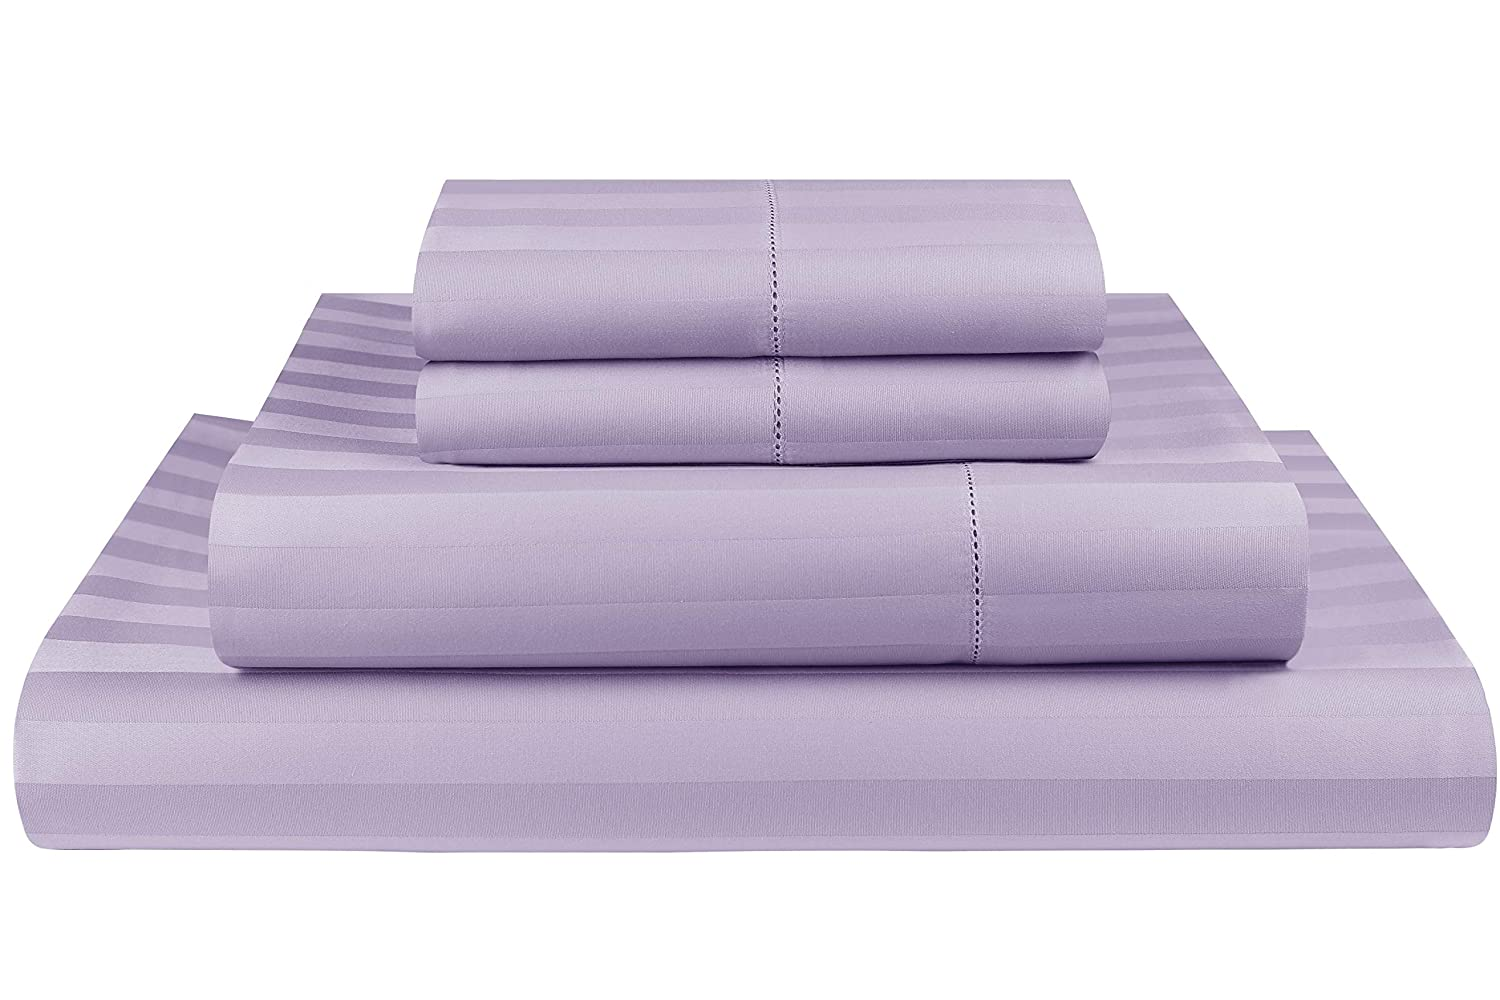 purplec King Threadmill Home Linen 500 Thread Count 100% Extra-Long Staple Cotton Sheet Set, Damask Stripe Hemstitch Luxury Bedding, California King Sheets, 4 Piece Set,Smooth Sateen Weave,Beige